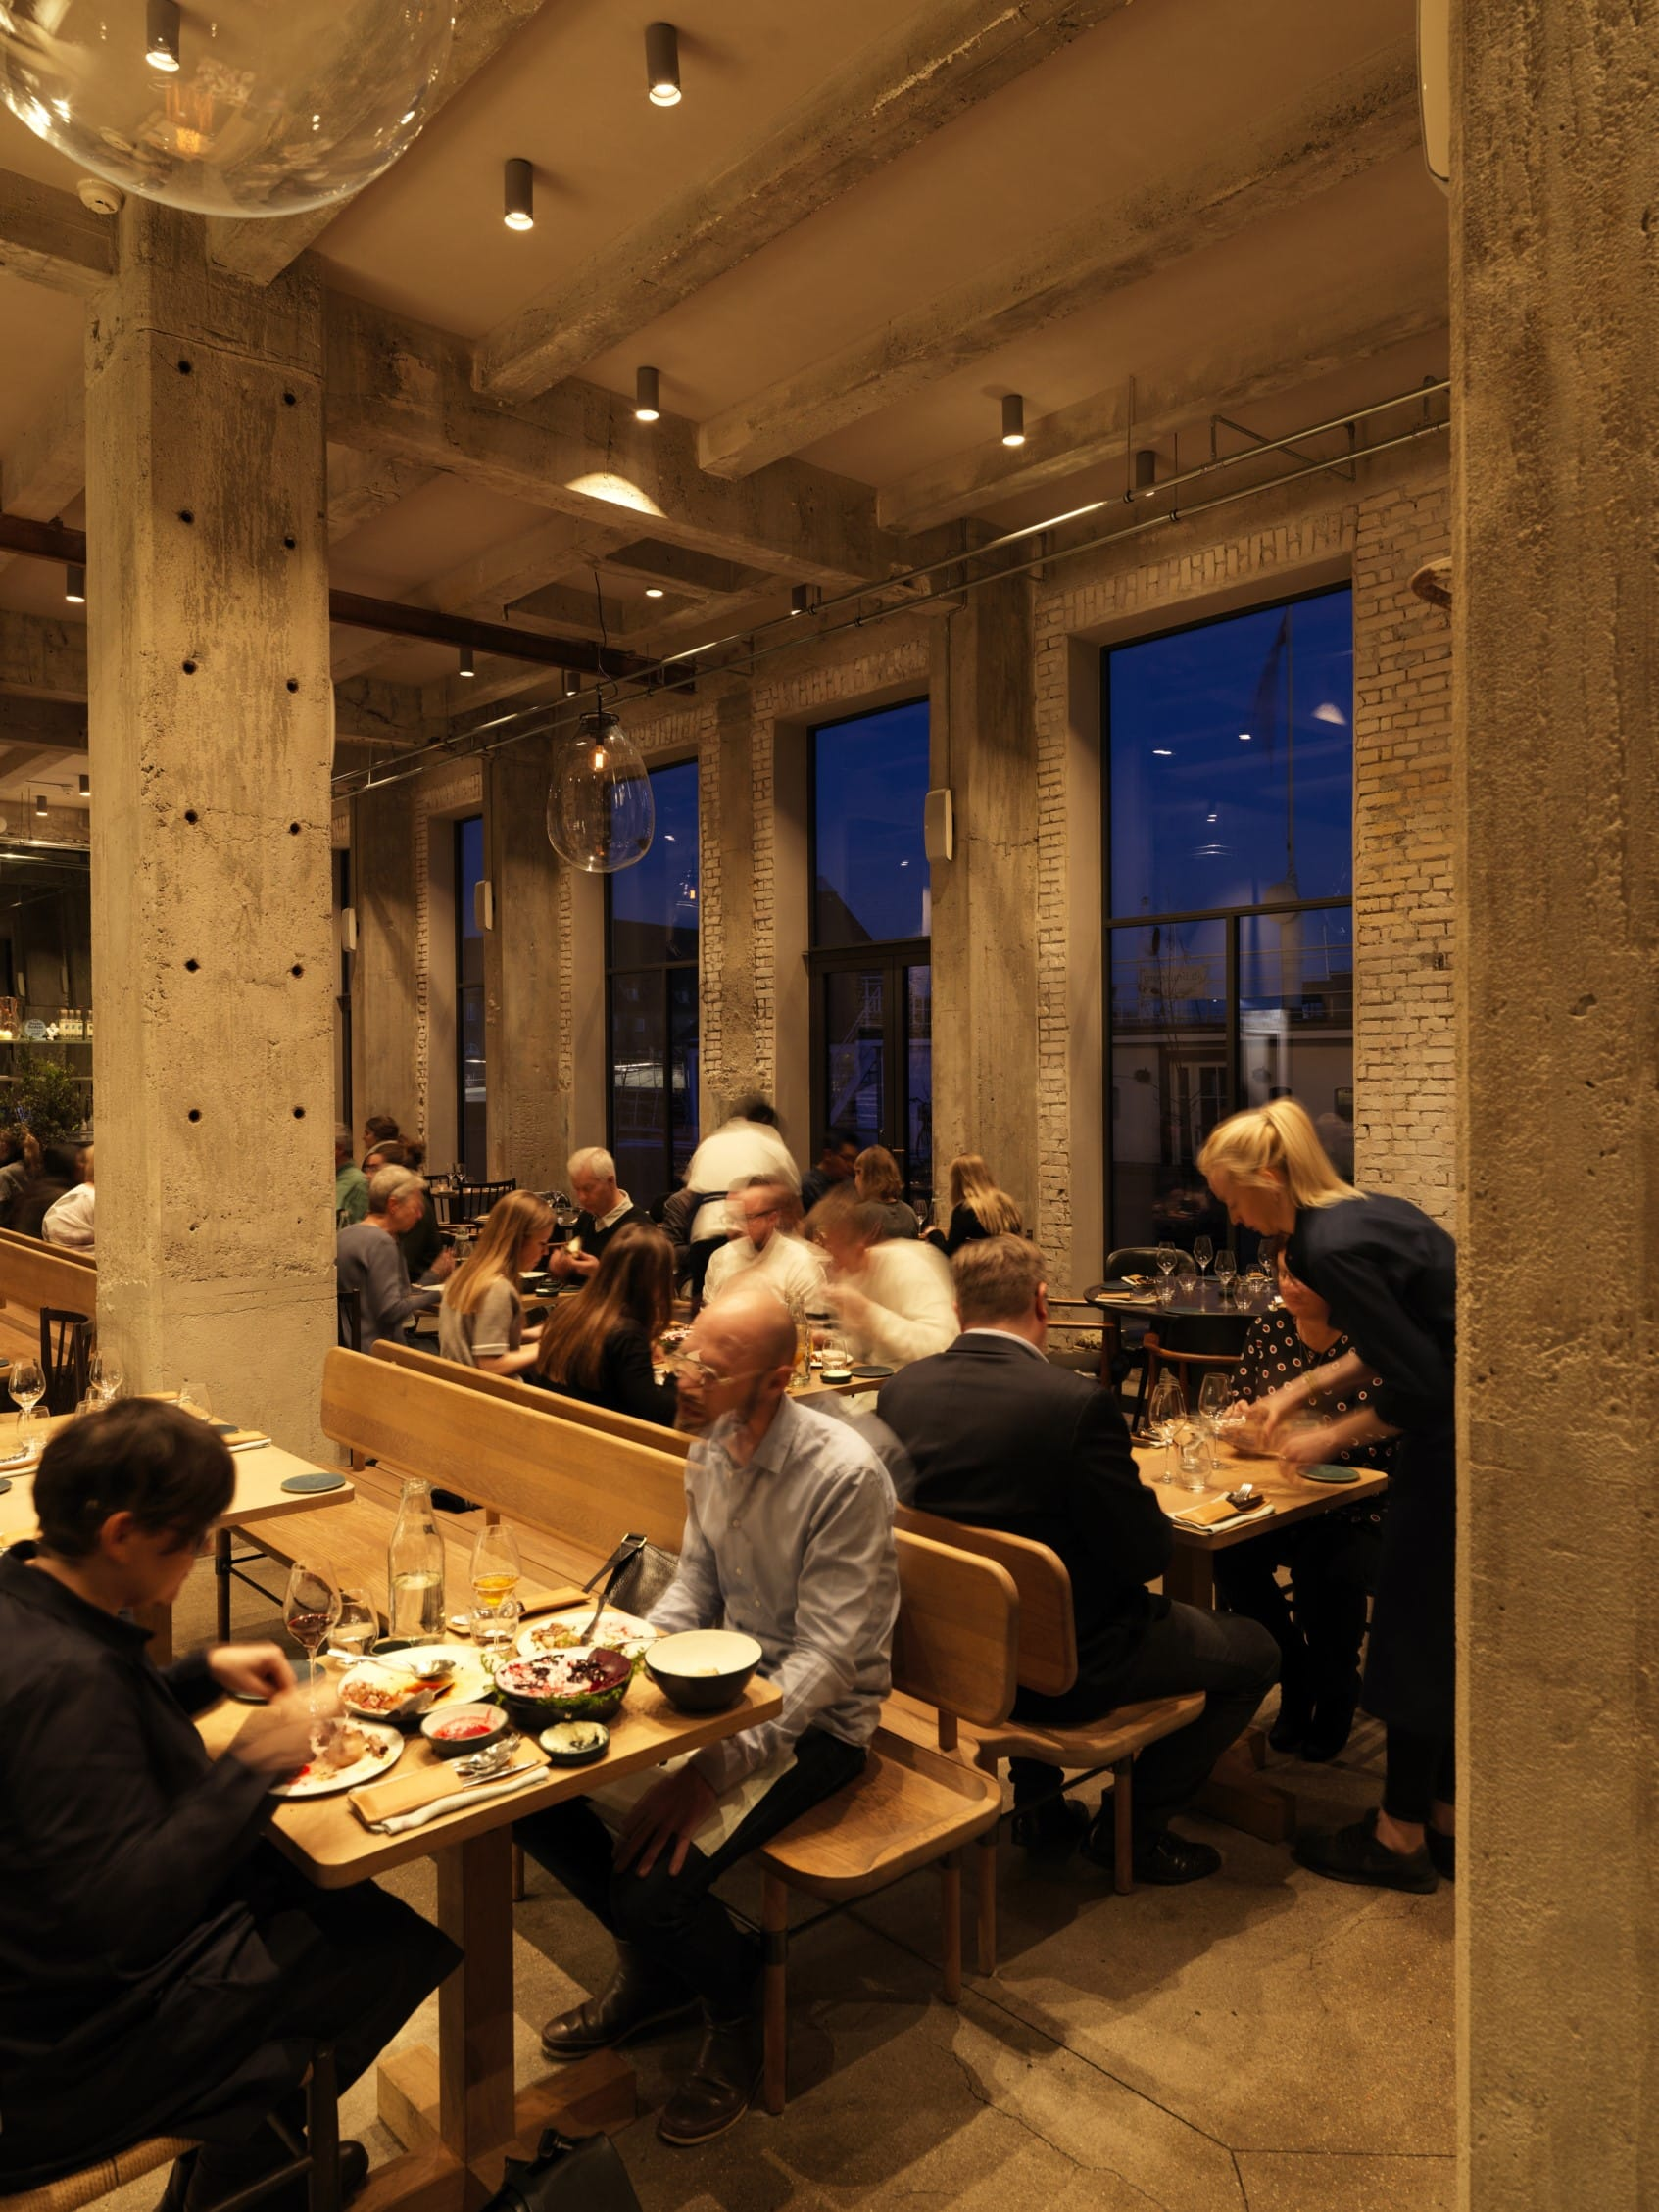 a bustling restaurant called 108, where diners eat at rows of wooden tables with benches